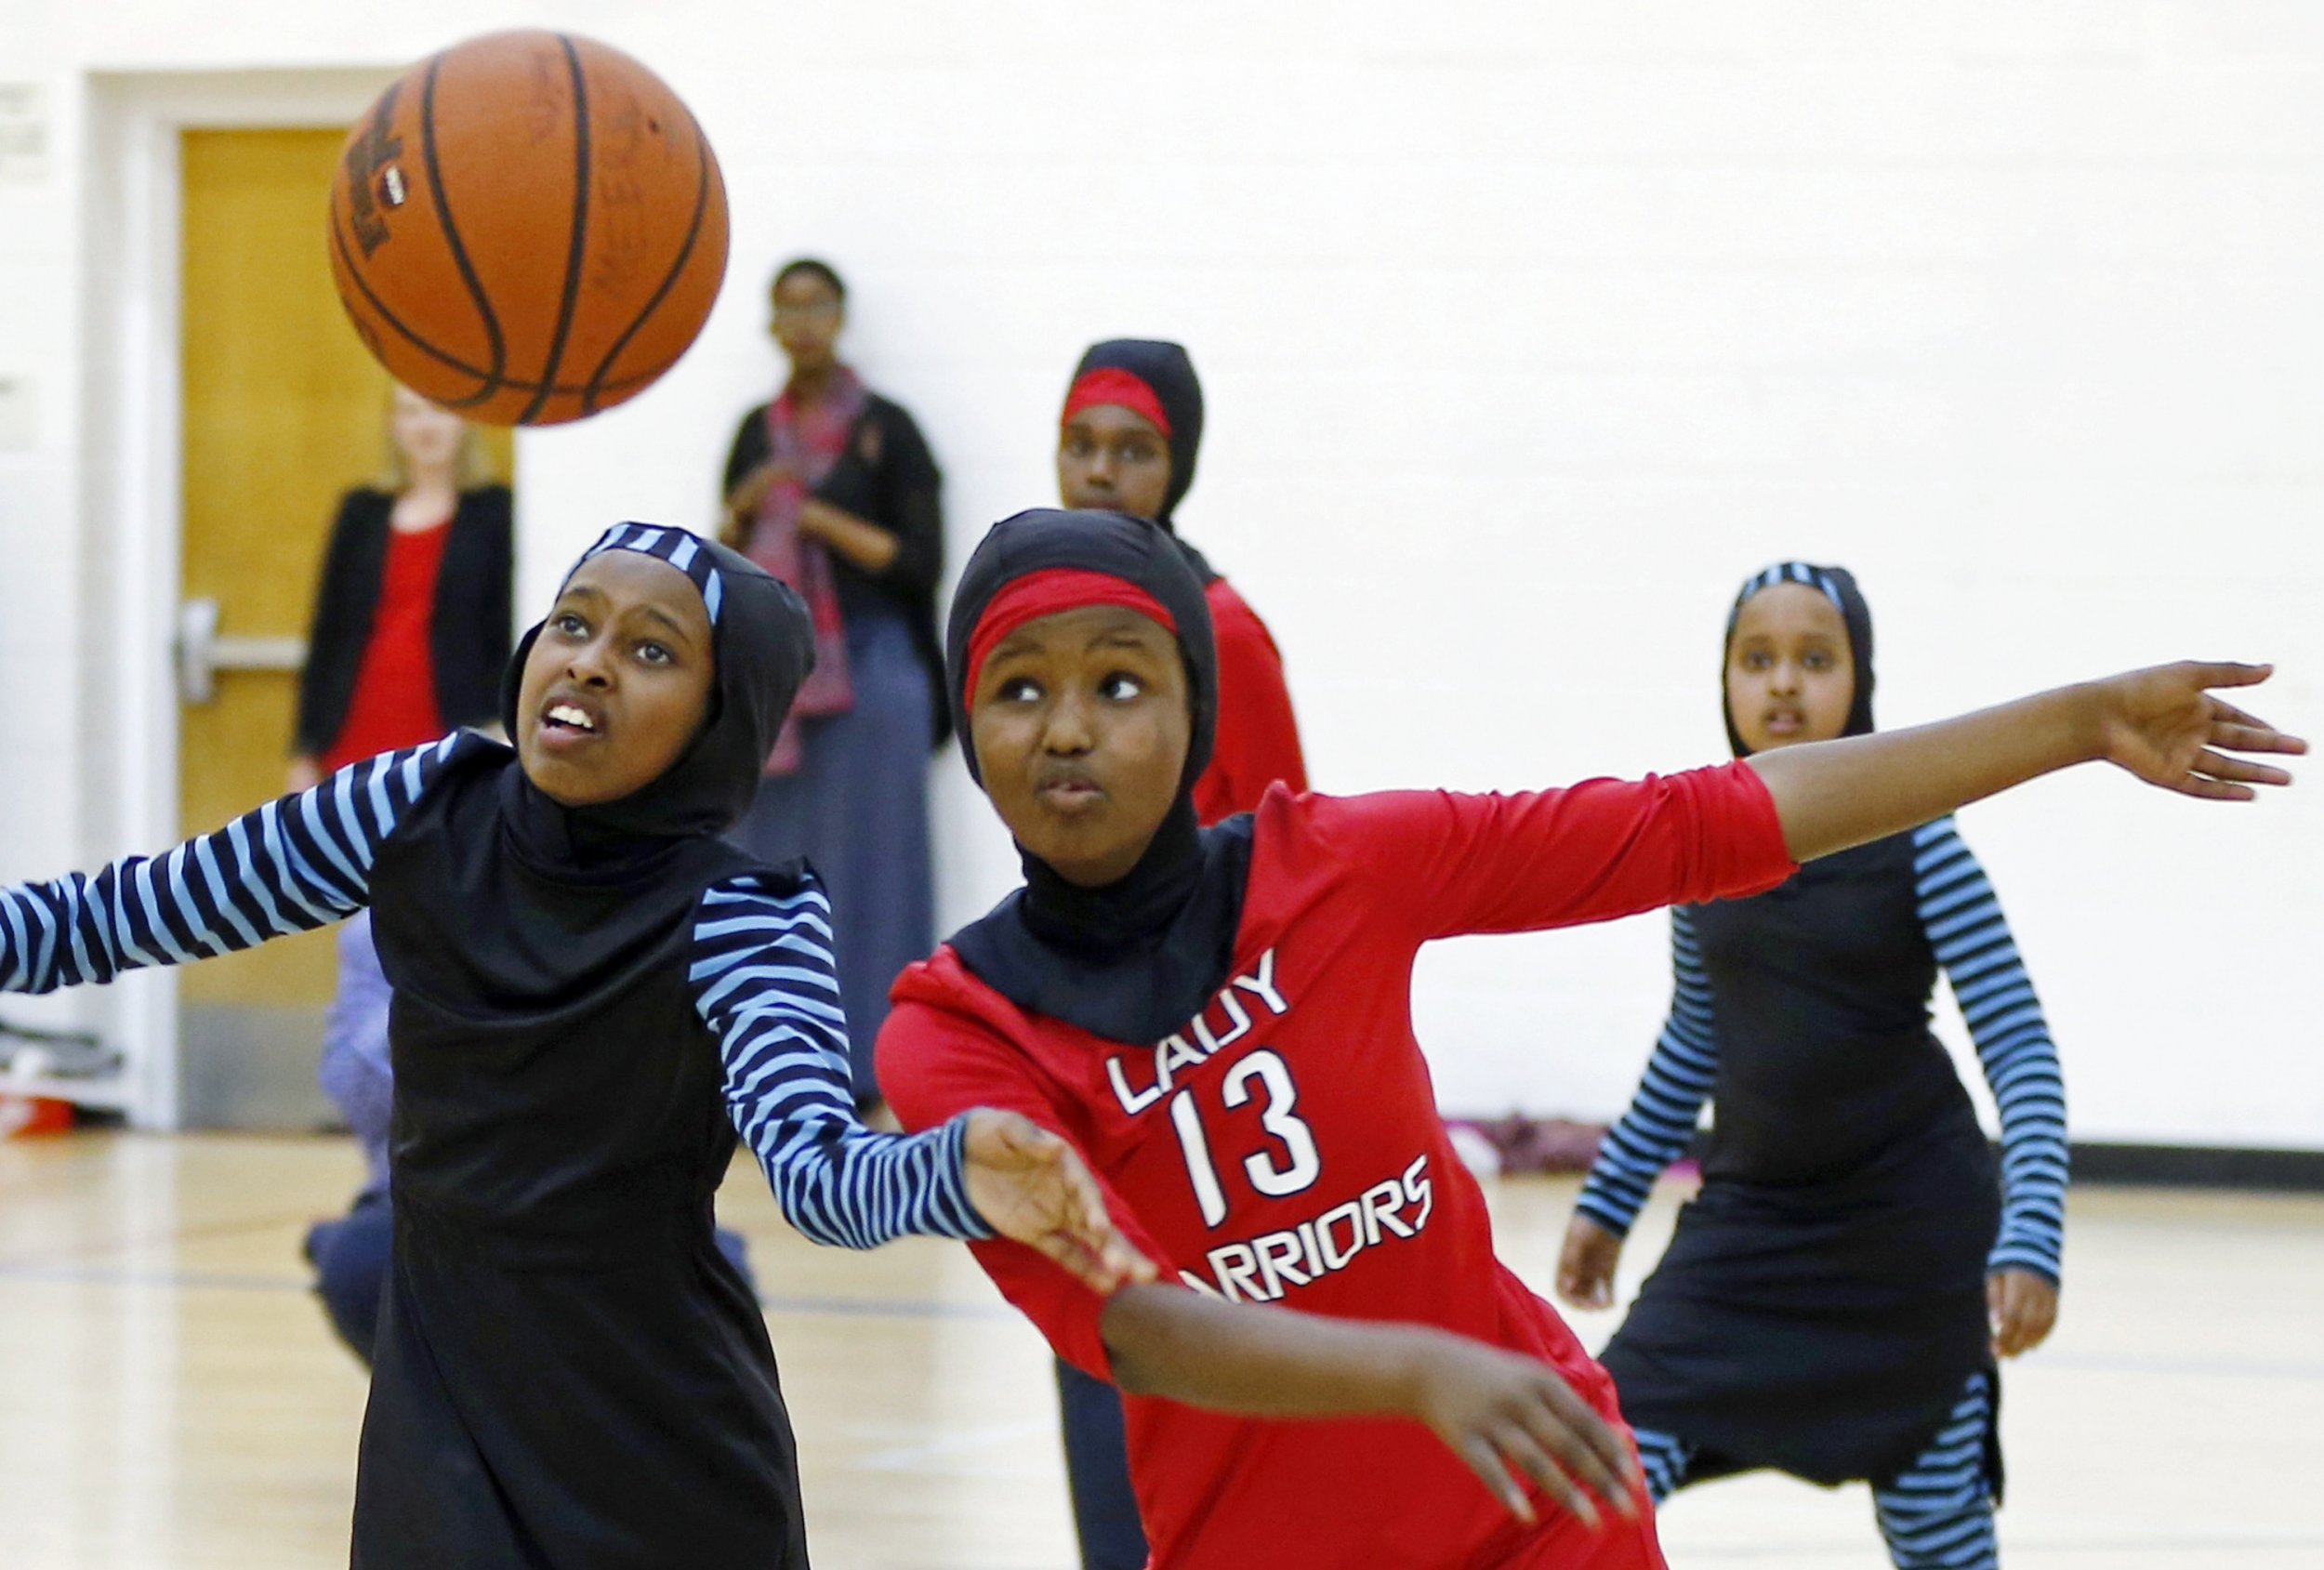 muslim women and sports Breaking: women in hijab play sports  one of the most important issues nowadays is bans on headscarves that exclude incredible muslim women athletes from the sports they love.